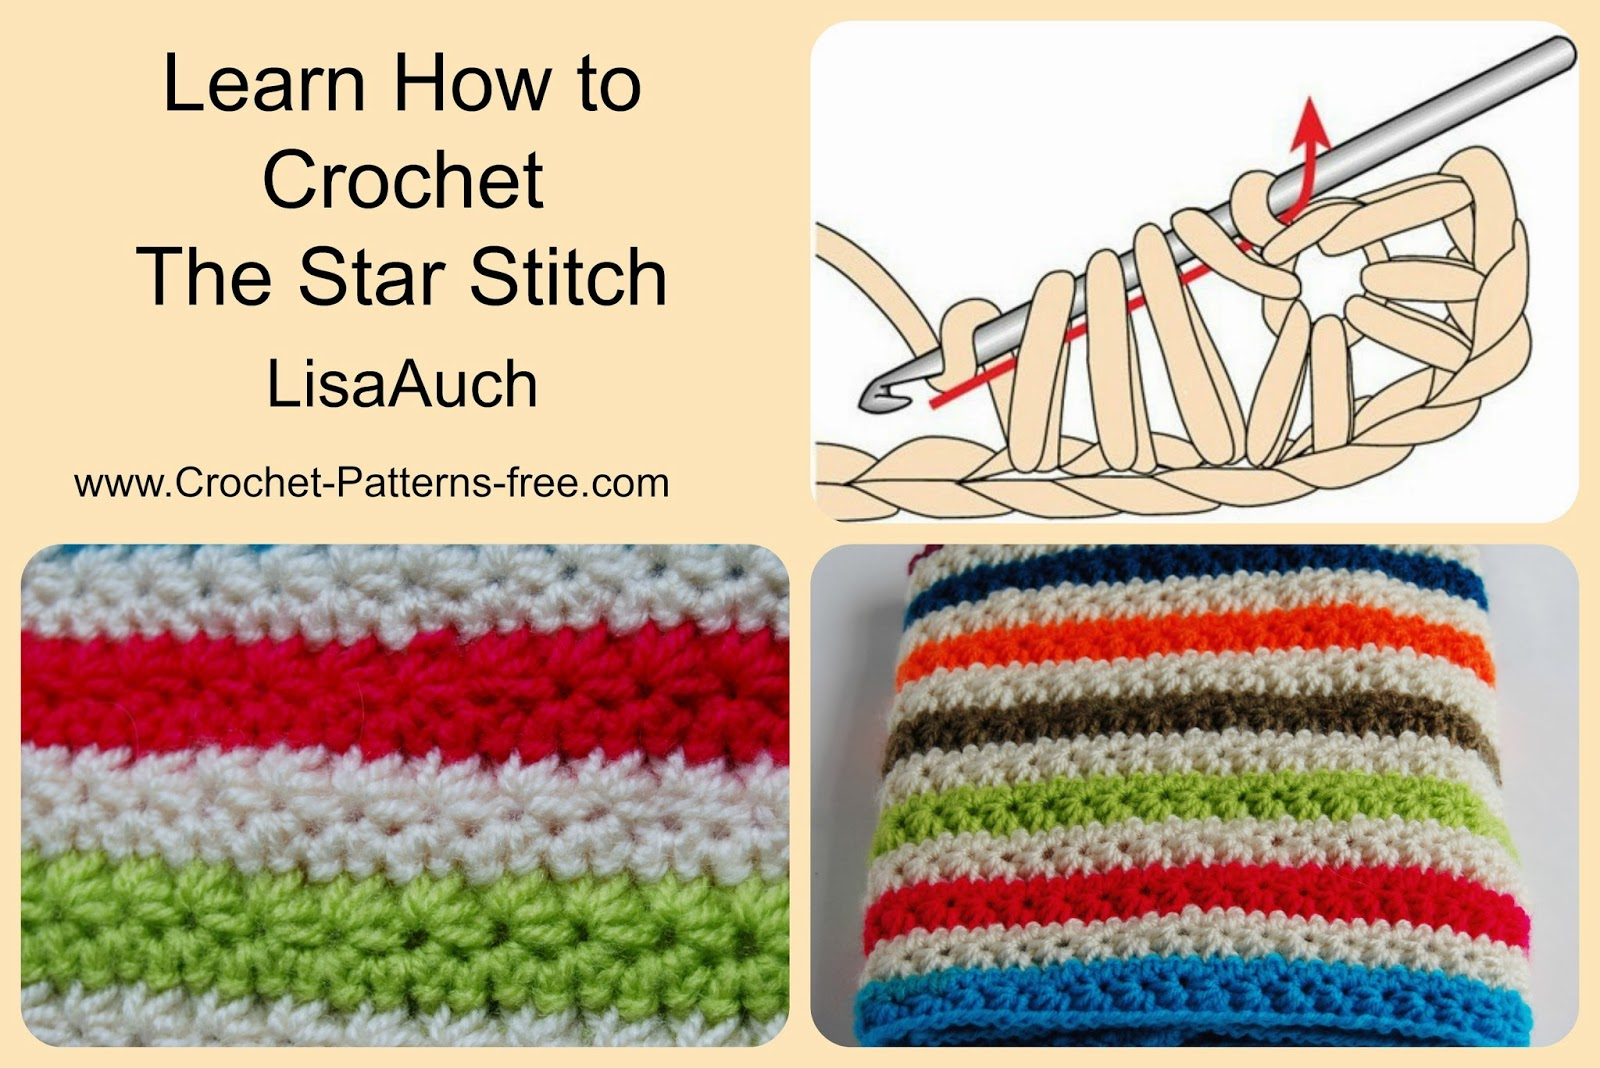 Free Crochet Patterns and Designs by LisaAuch: Learn to Crochet ...